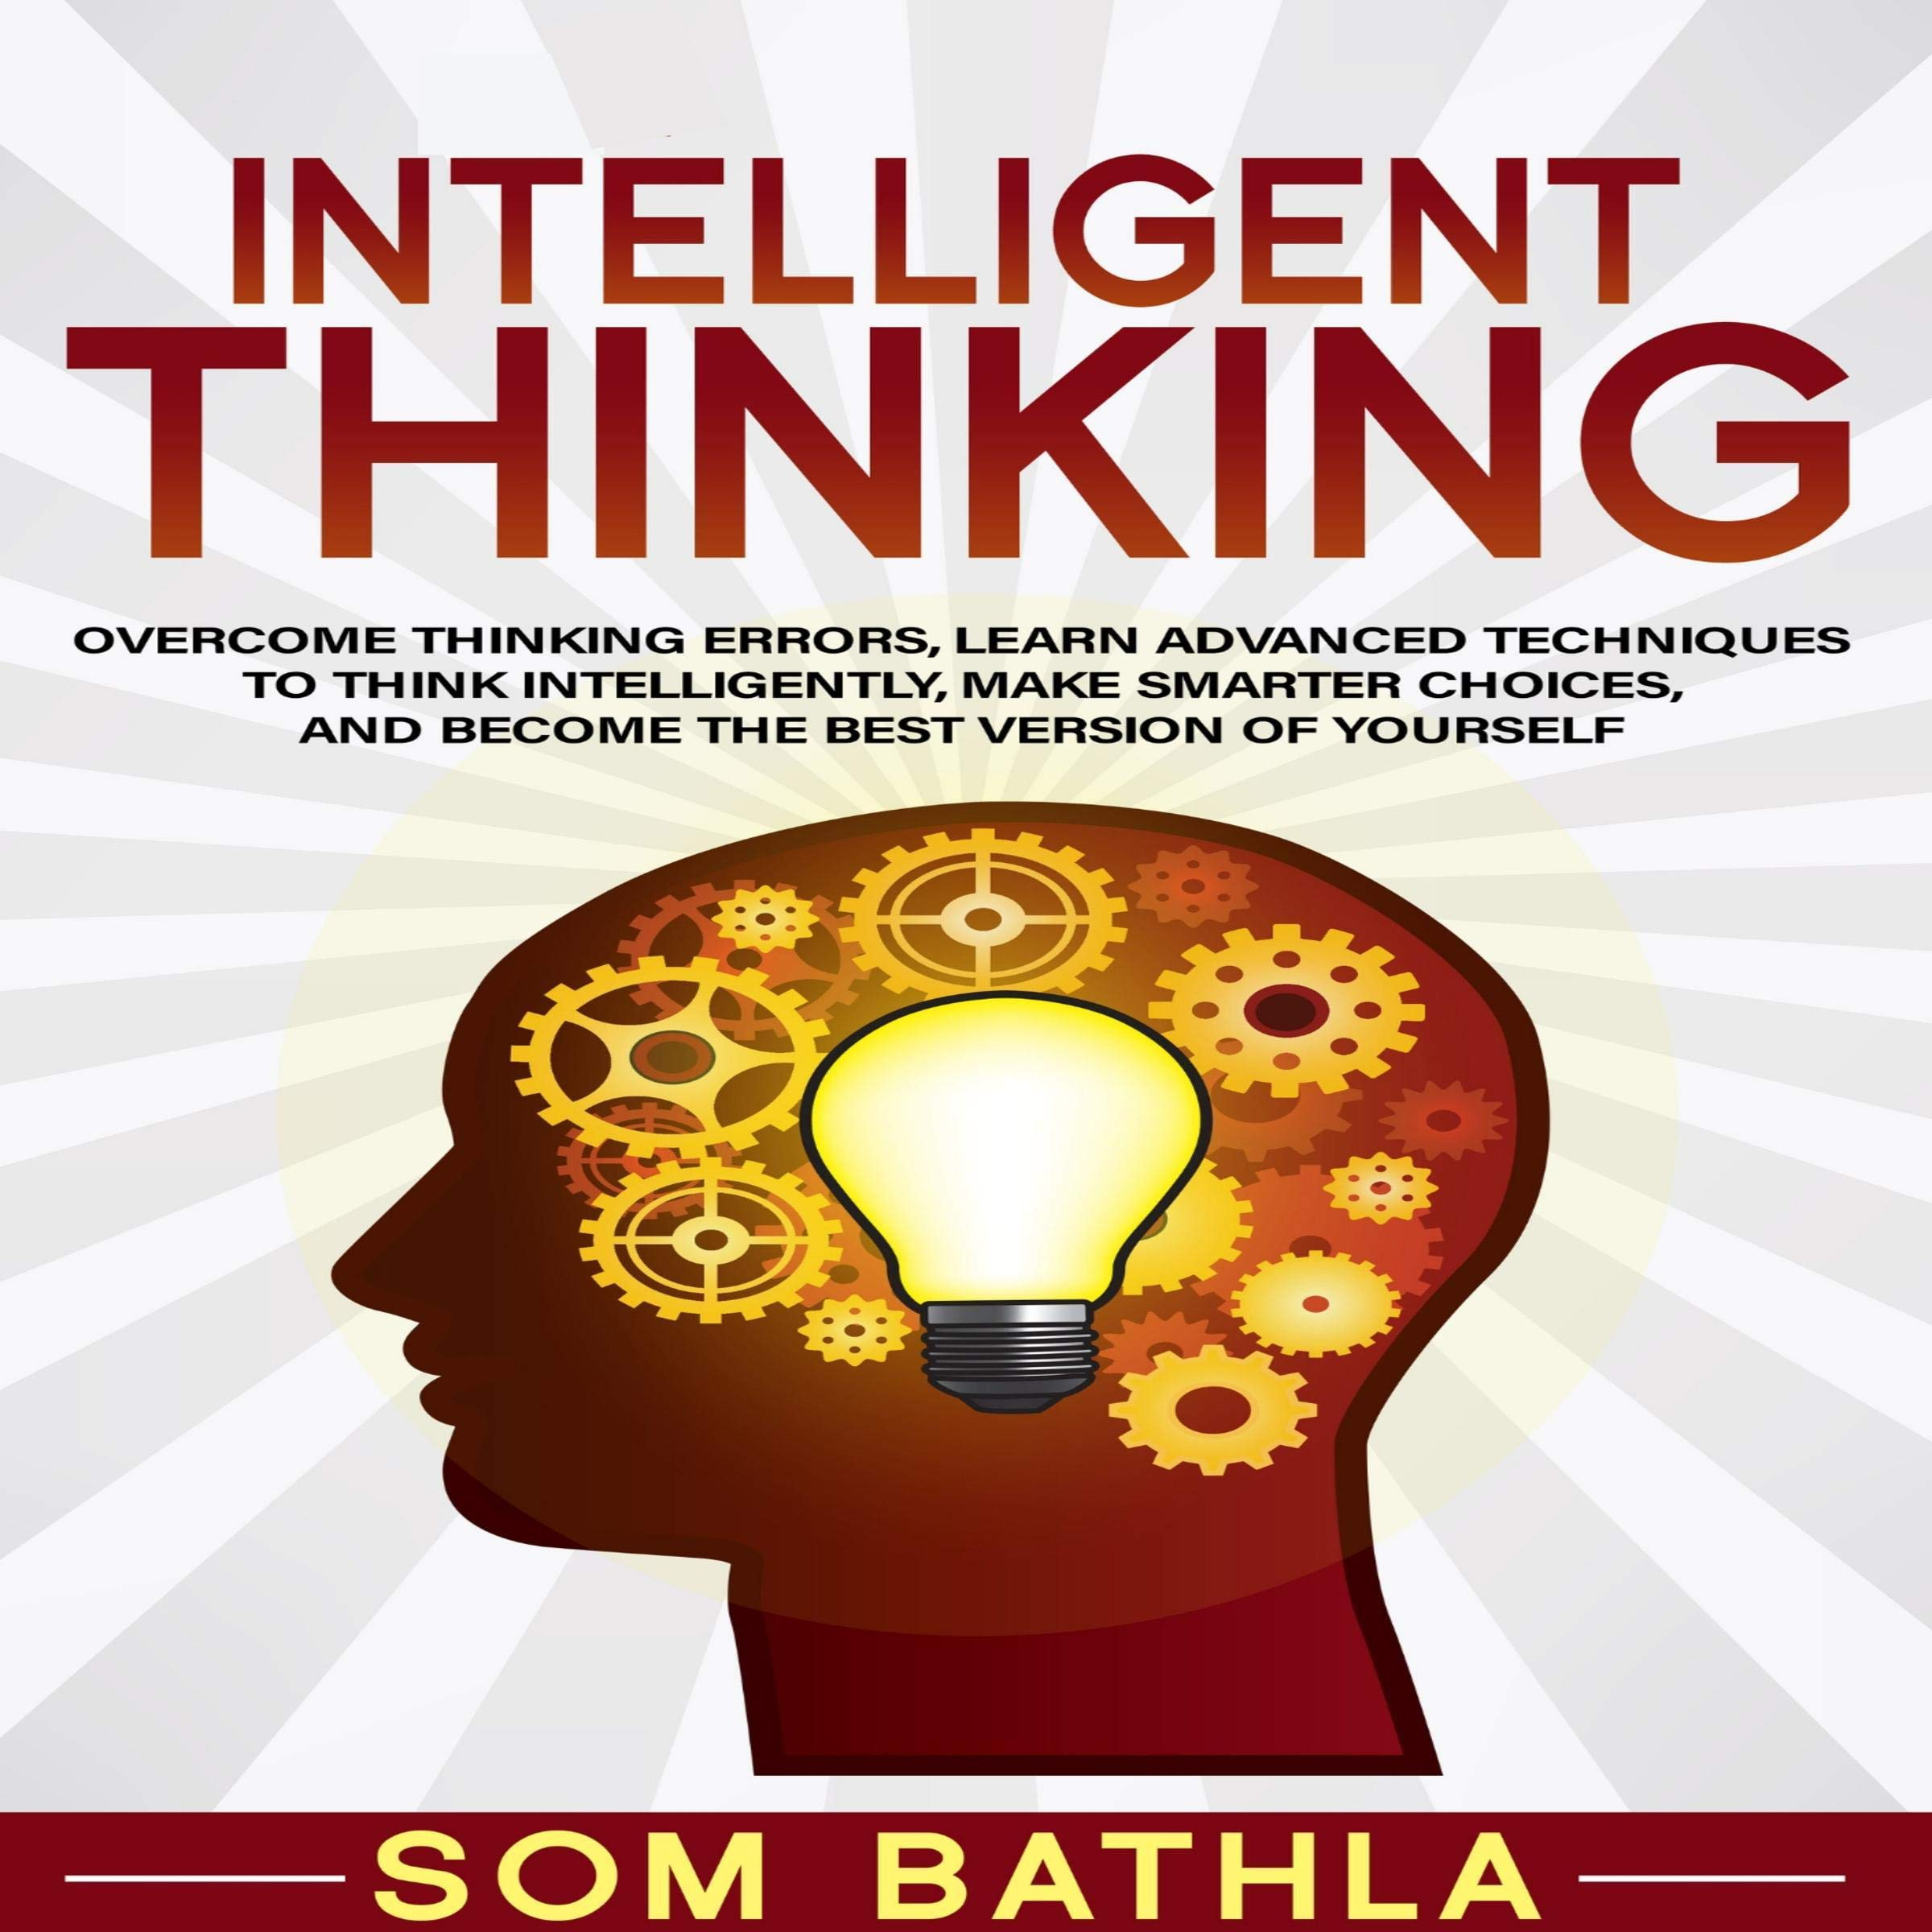 Intelligent Thinking  Overcome Thinking Errors Learn Advanced Techniques To Think Intelligently Make Smarter Choices And Become The Best Version Of Yourself  Power Up Your Brain Book 1